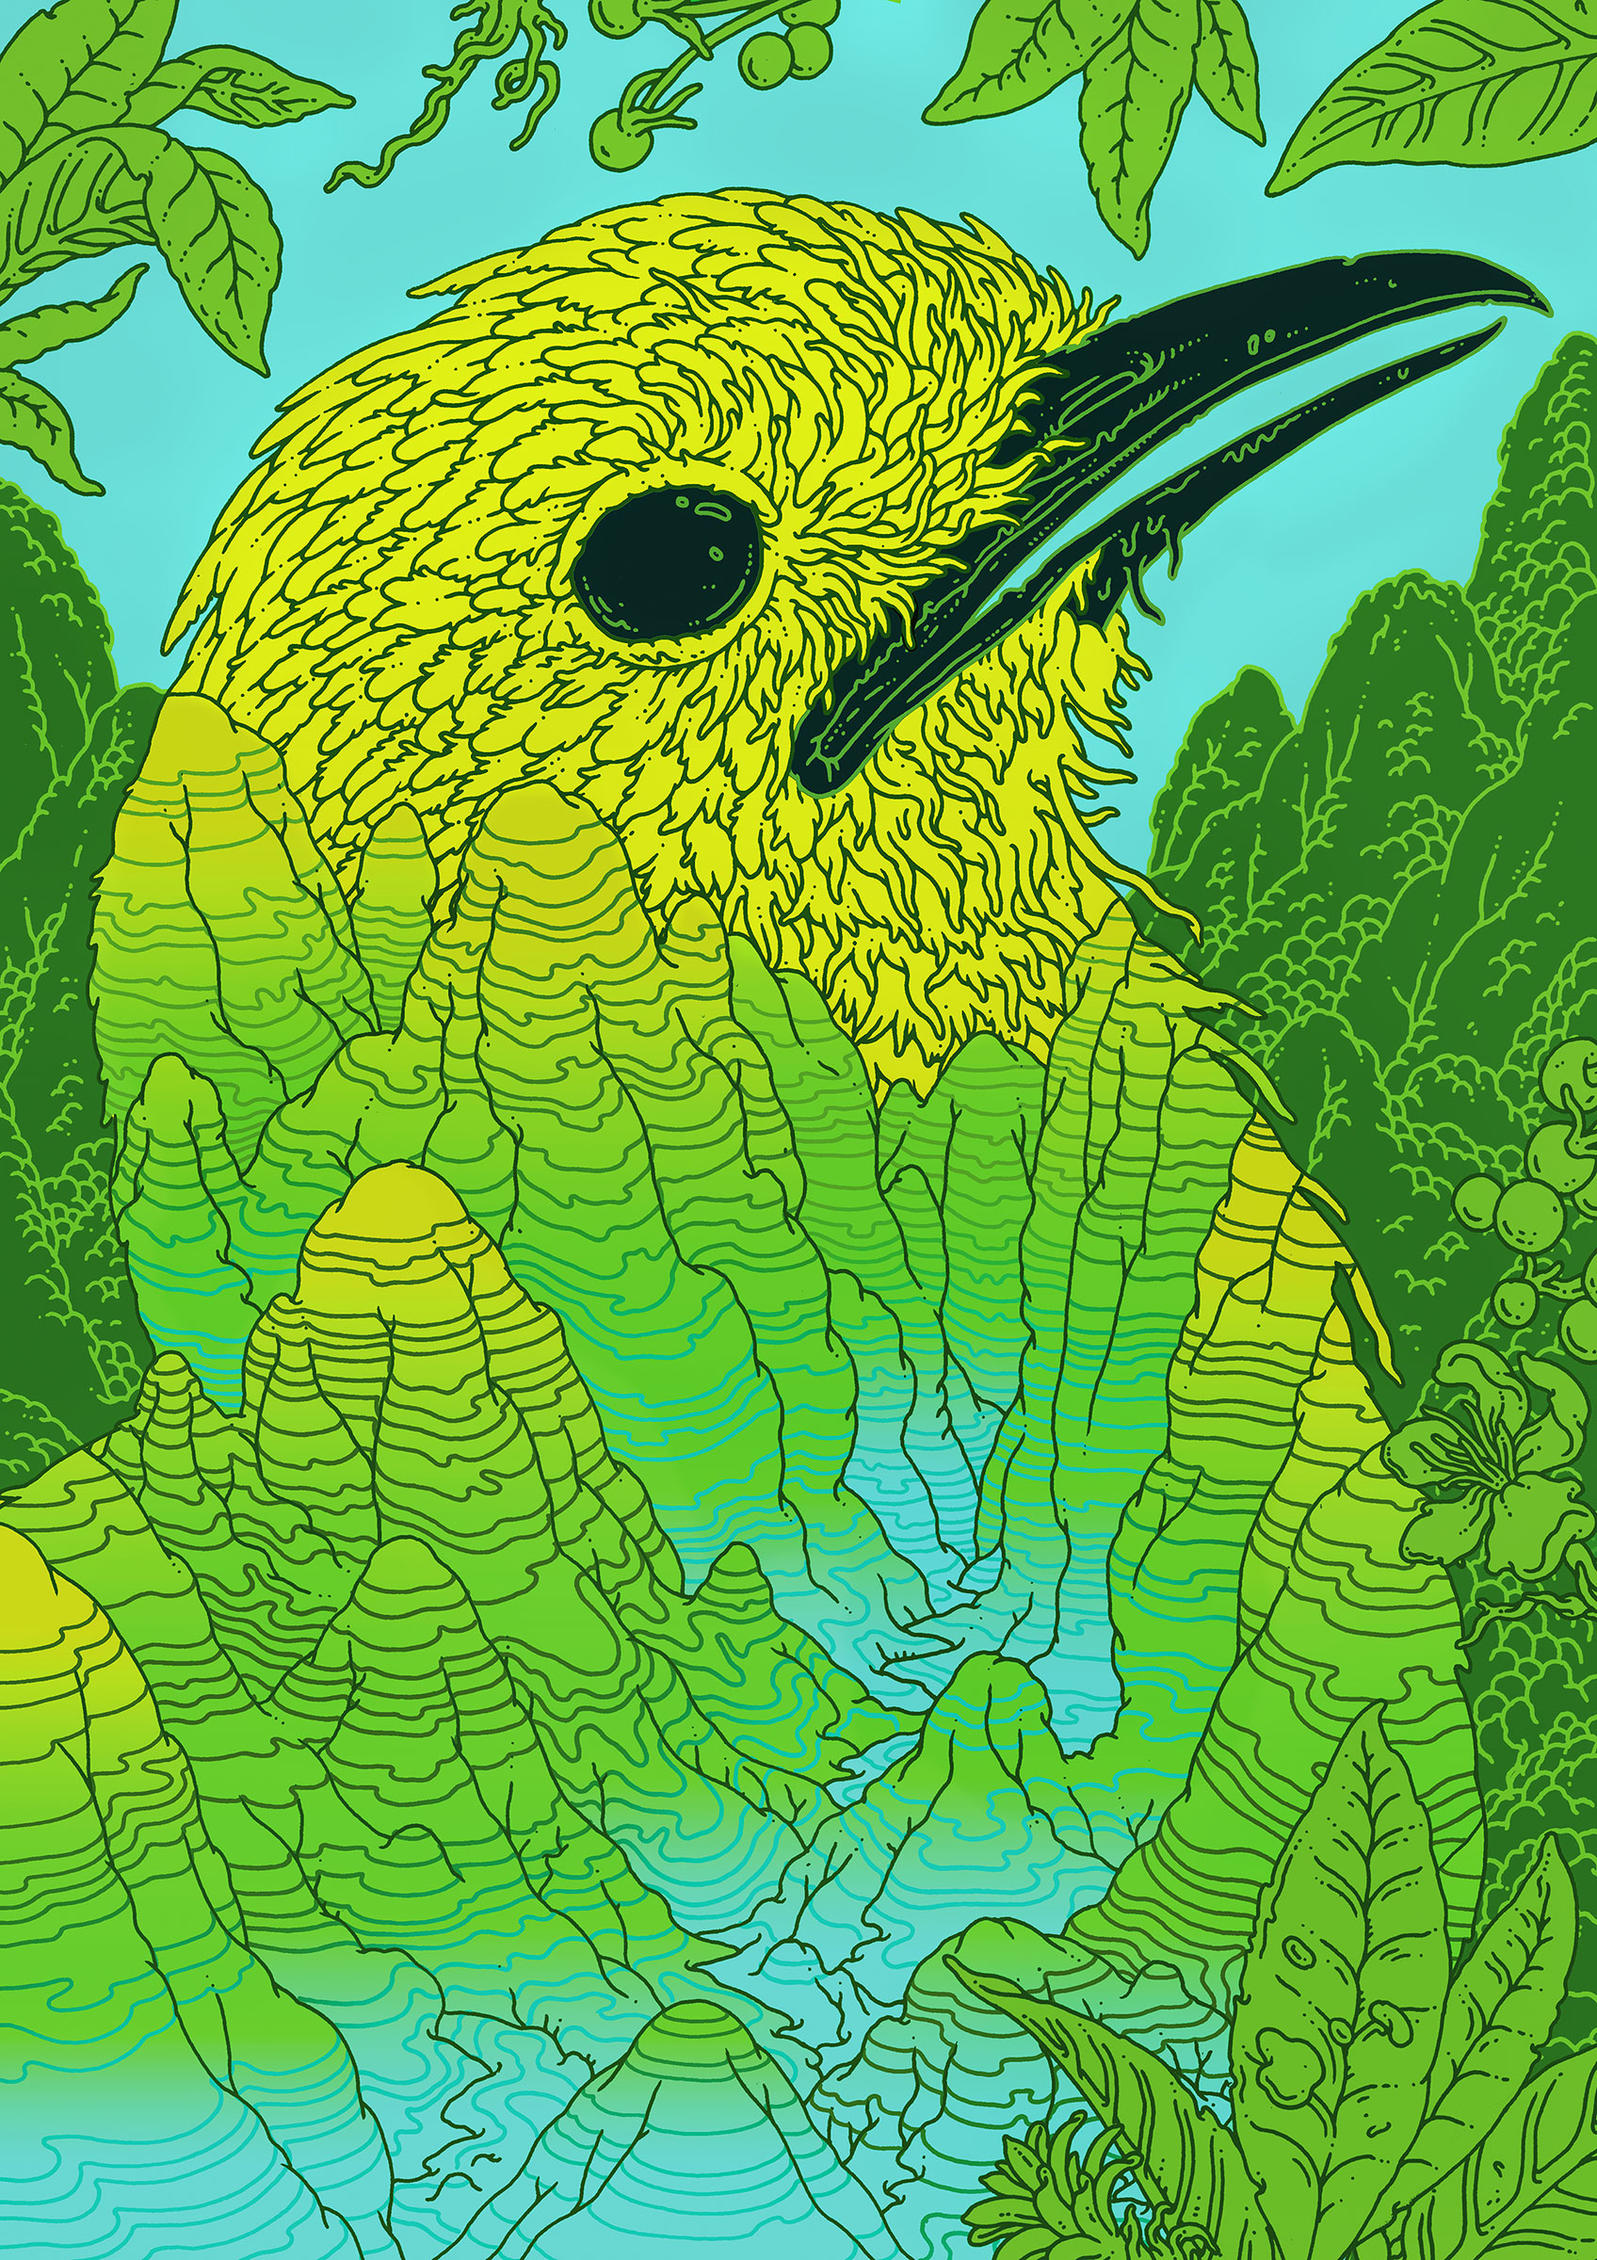 """The Grey-winged Cotinga's habitat in Brazil might be a lot tinier than we think, making it """"critically endangered,"""" some scientists argue. A tighter look at its geography would help determine its ultimate status. Illustration: Eric Nyquist"""